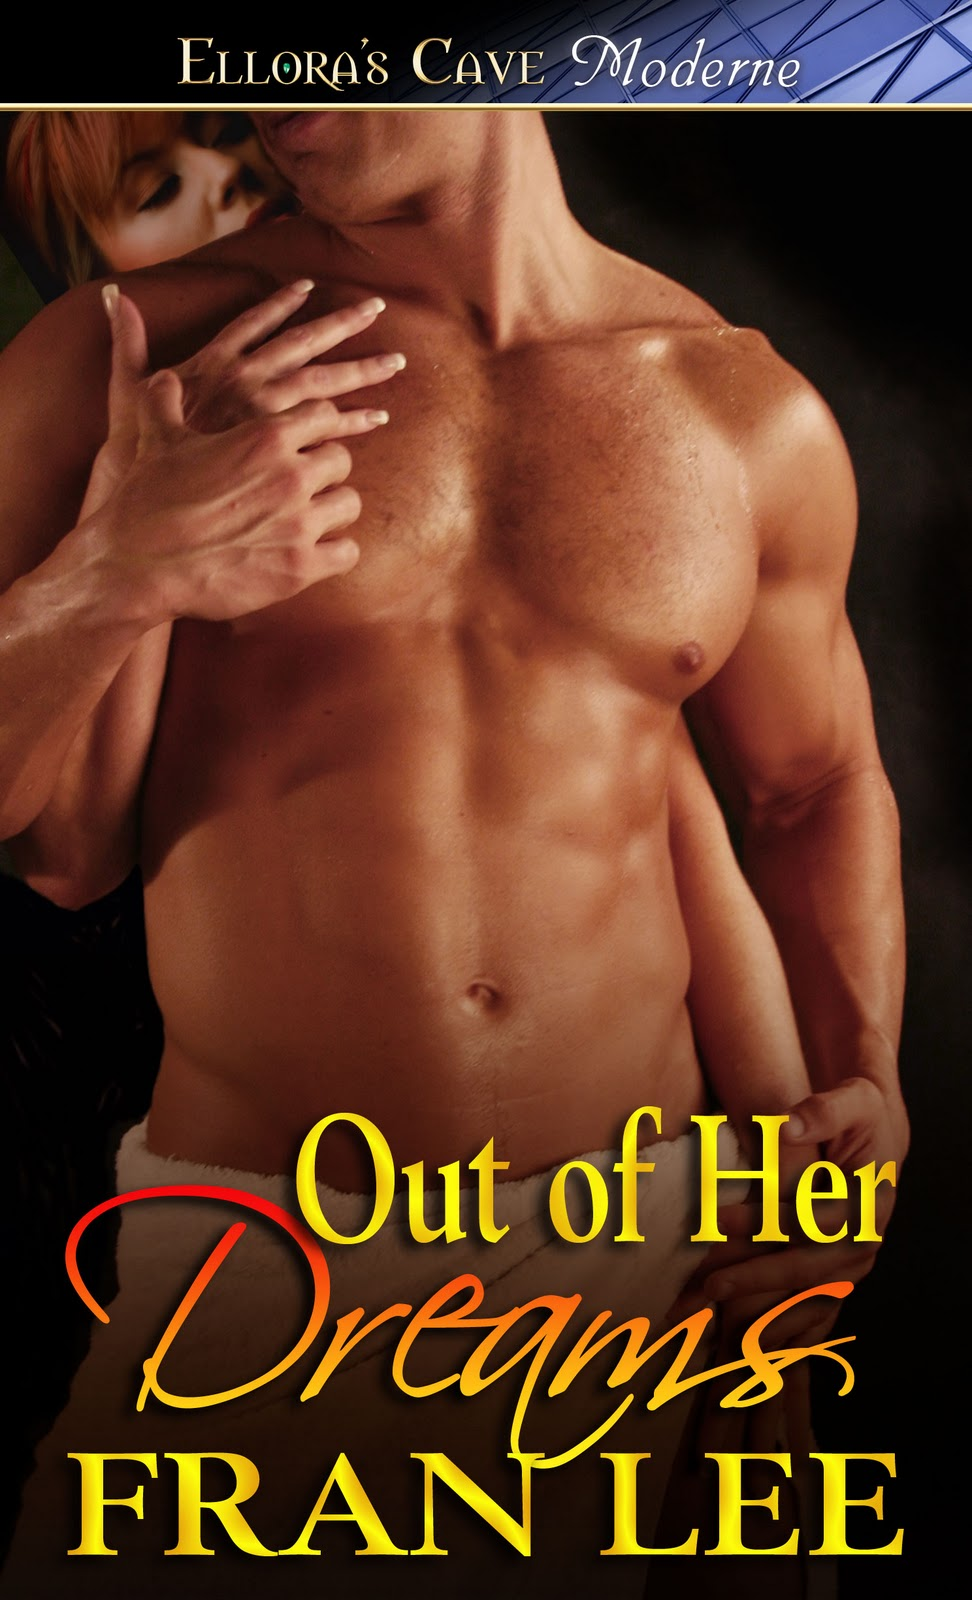 She's a best-selling erotic romance writer. Her fans adore her.